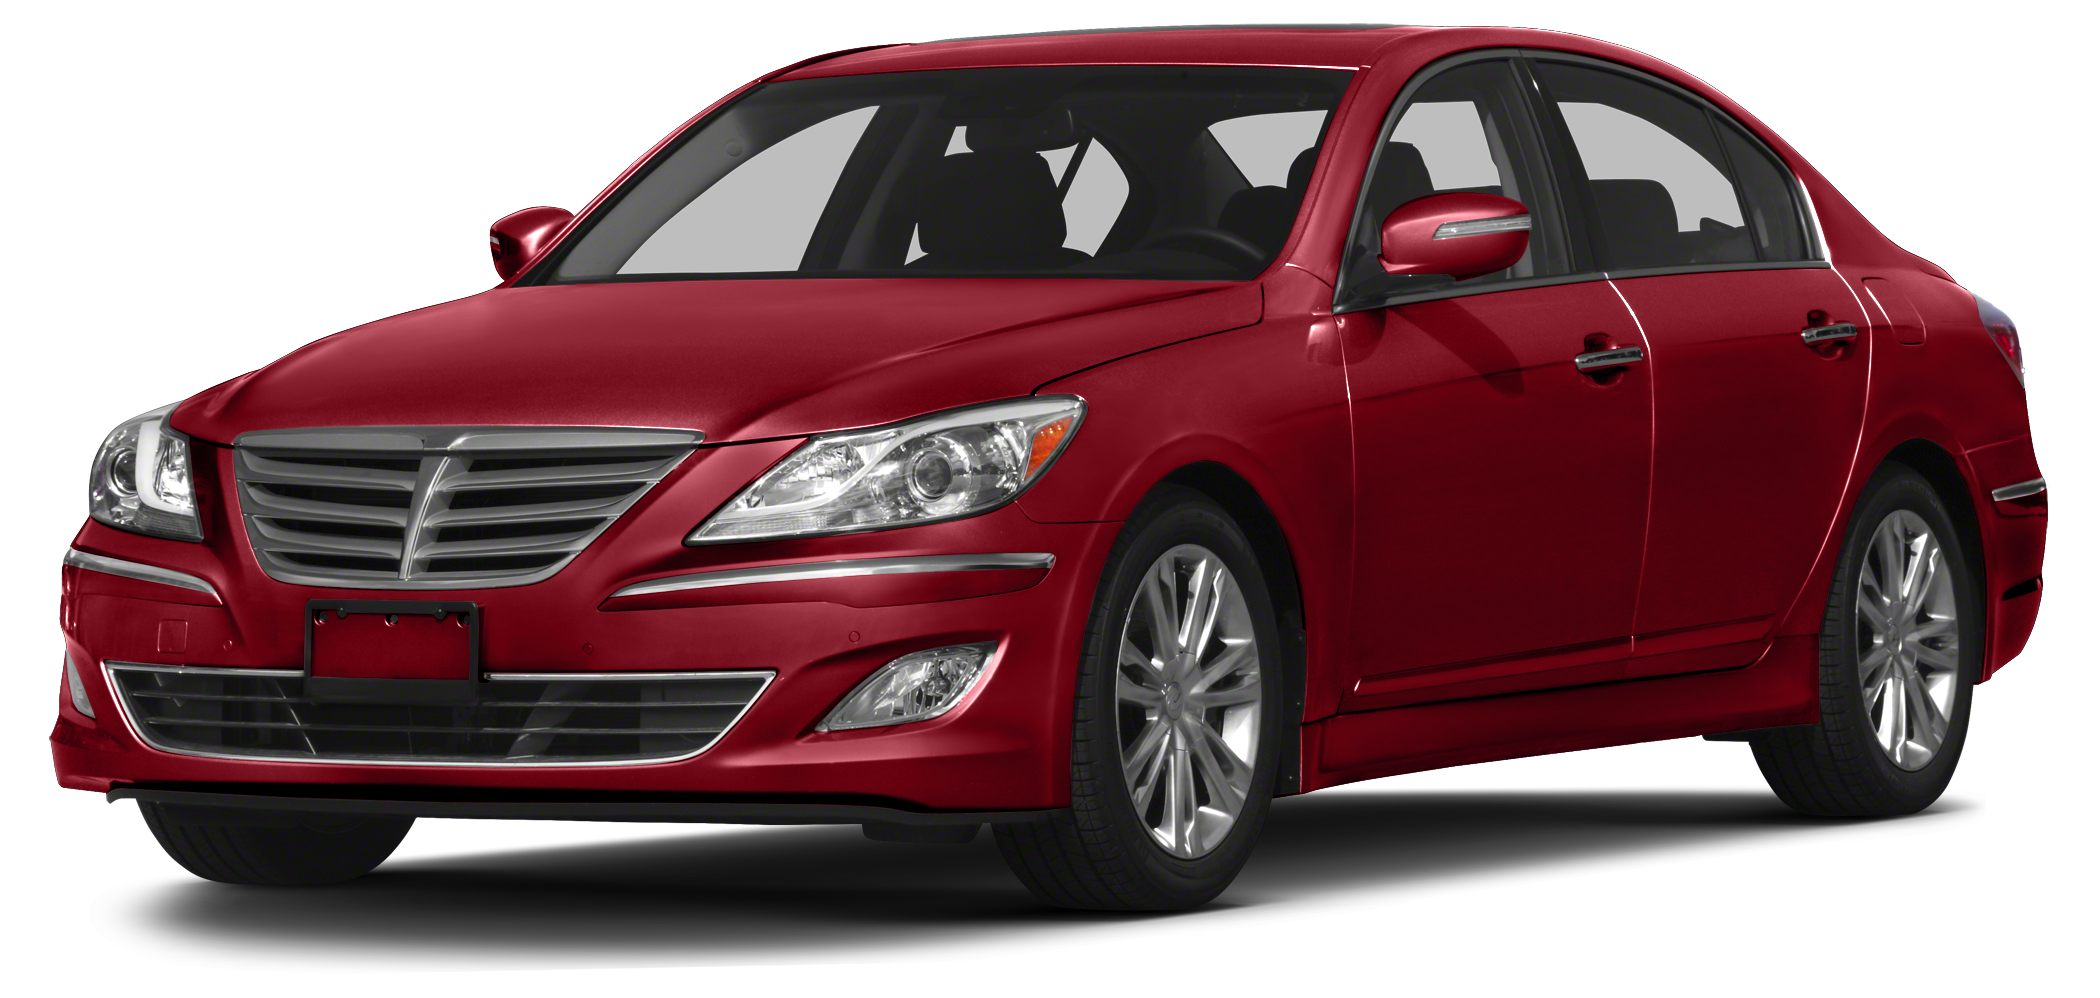 2013 Hyundai Genesis 38 Recognized by JD Power and Associates as the Most Dependable Midsize Pr